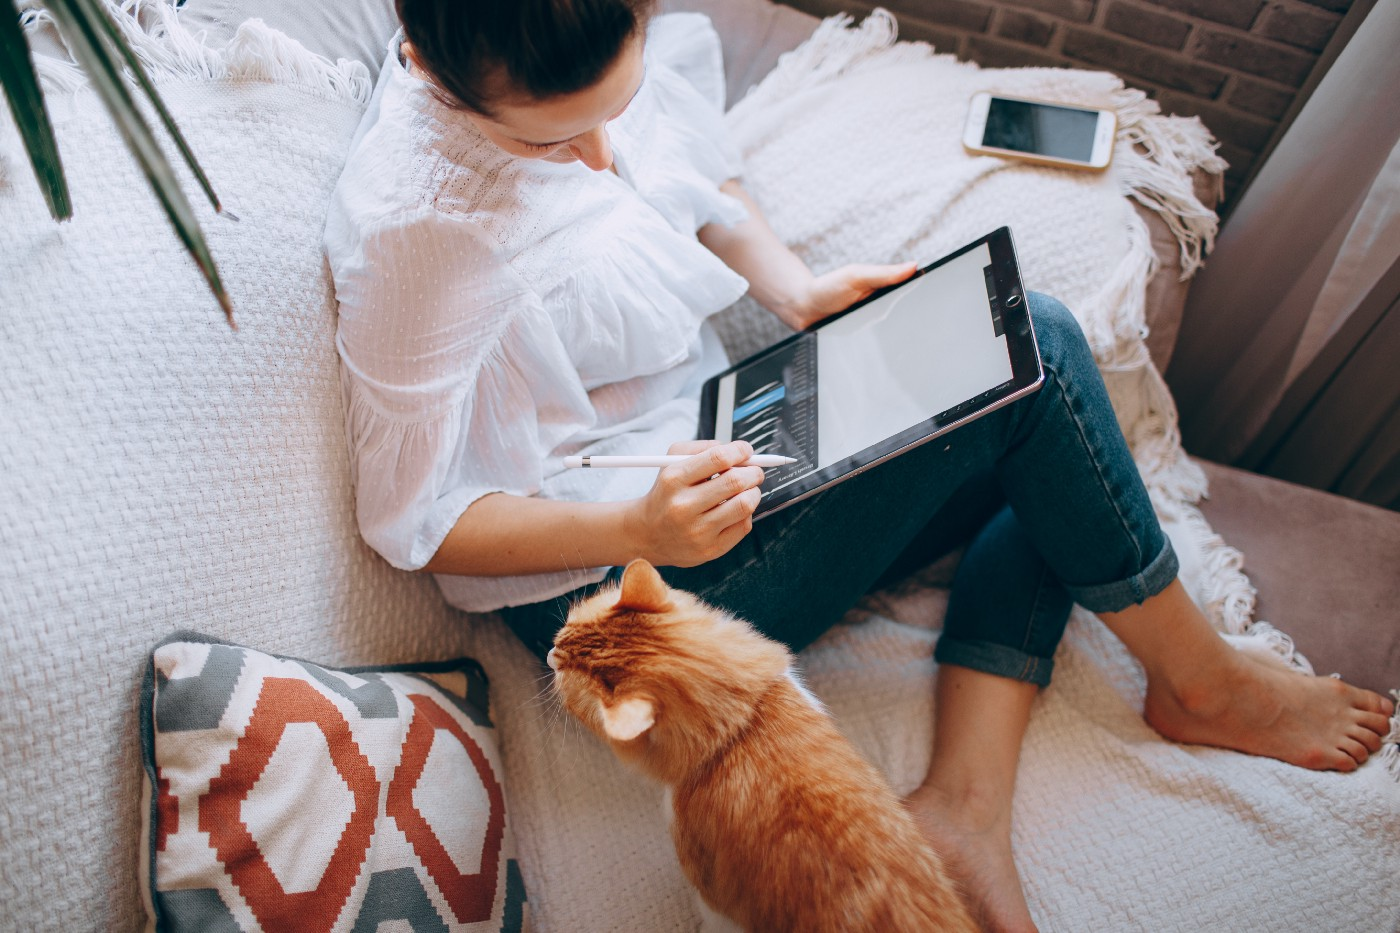 A UX designer working on her tablet next to a cat